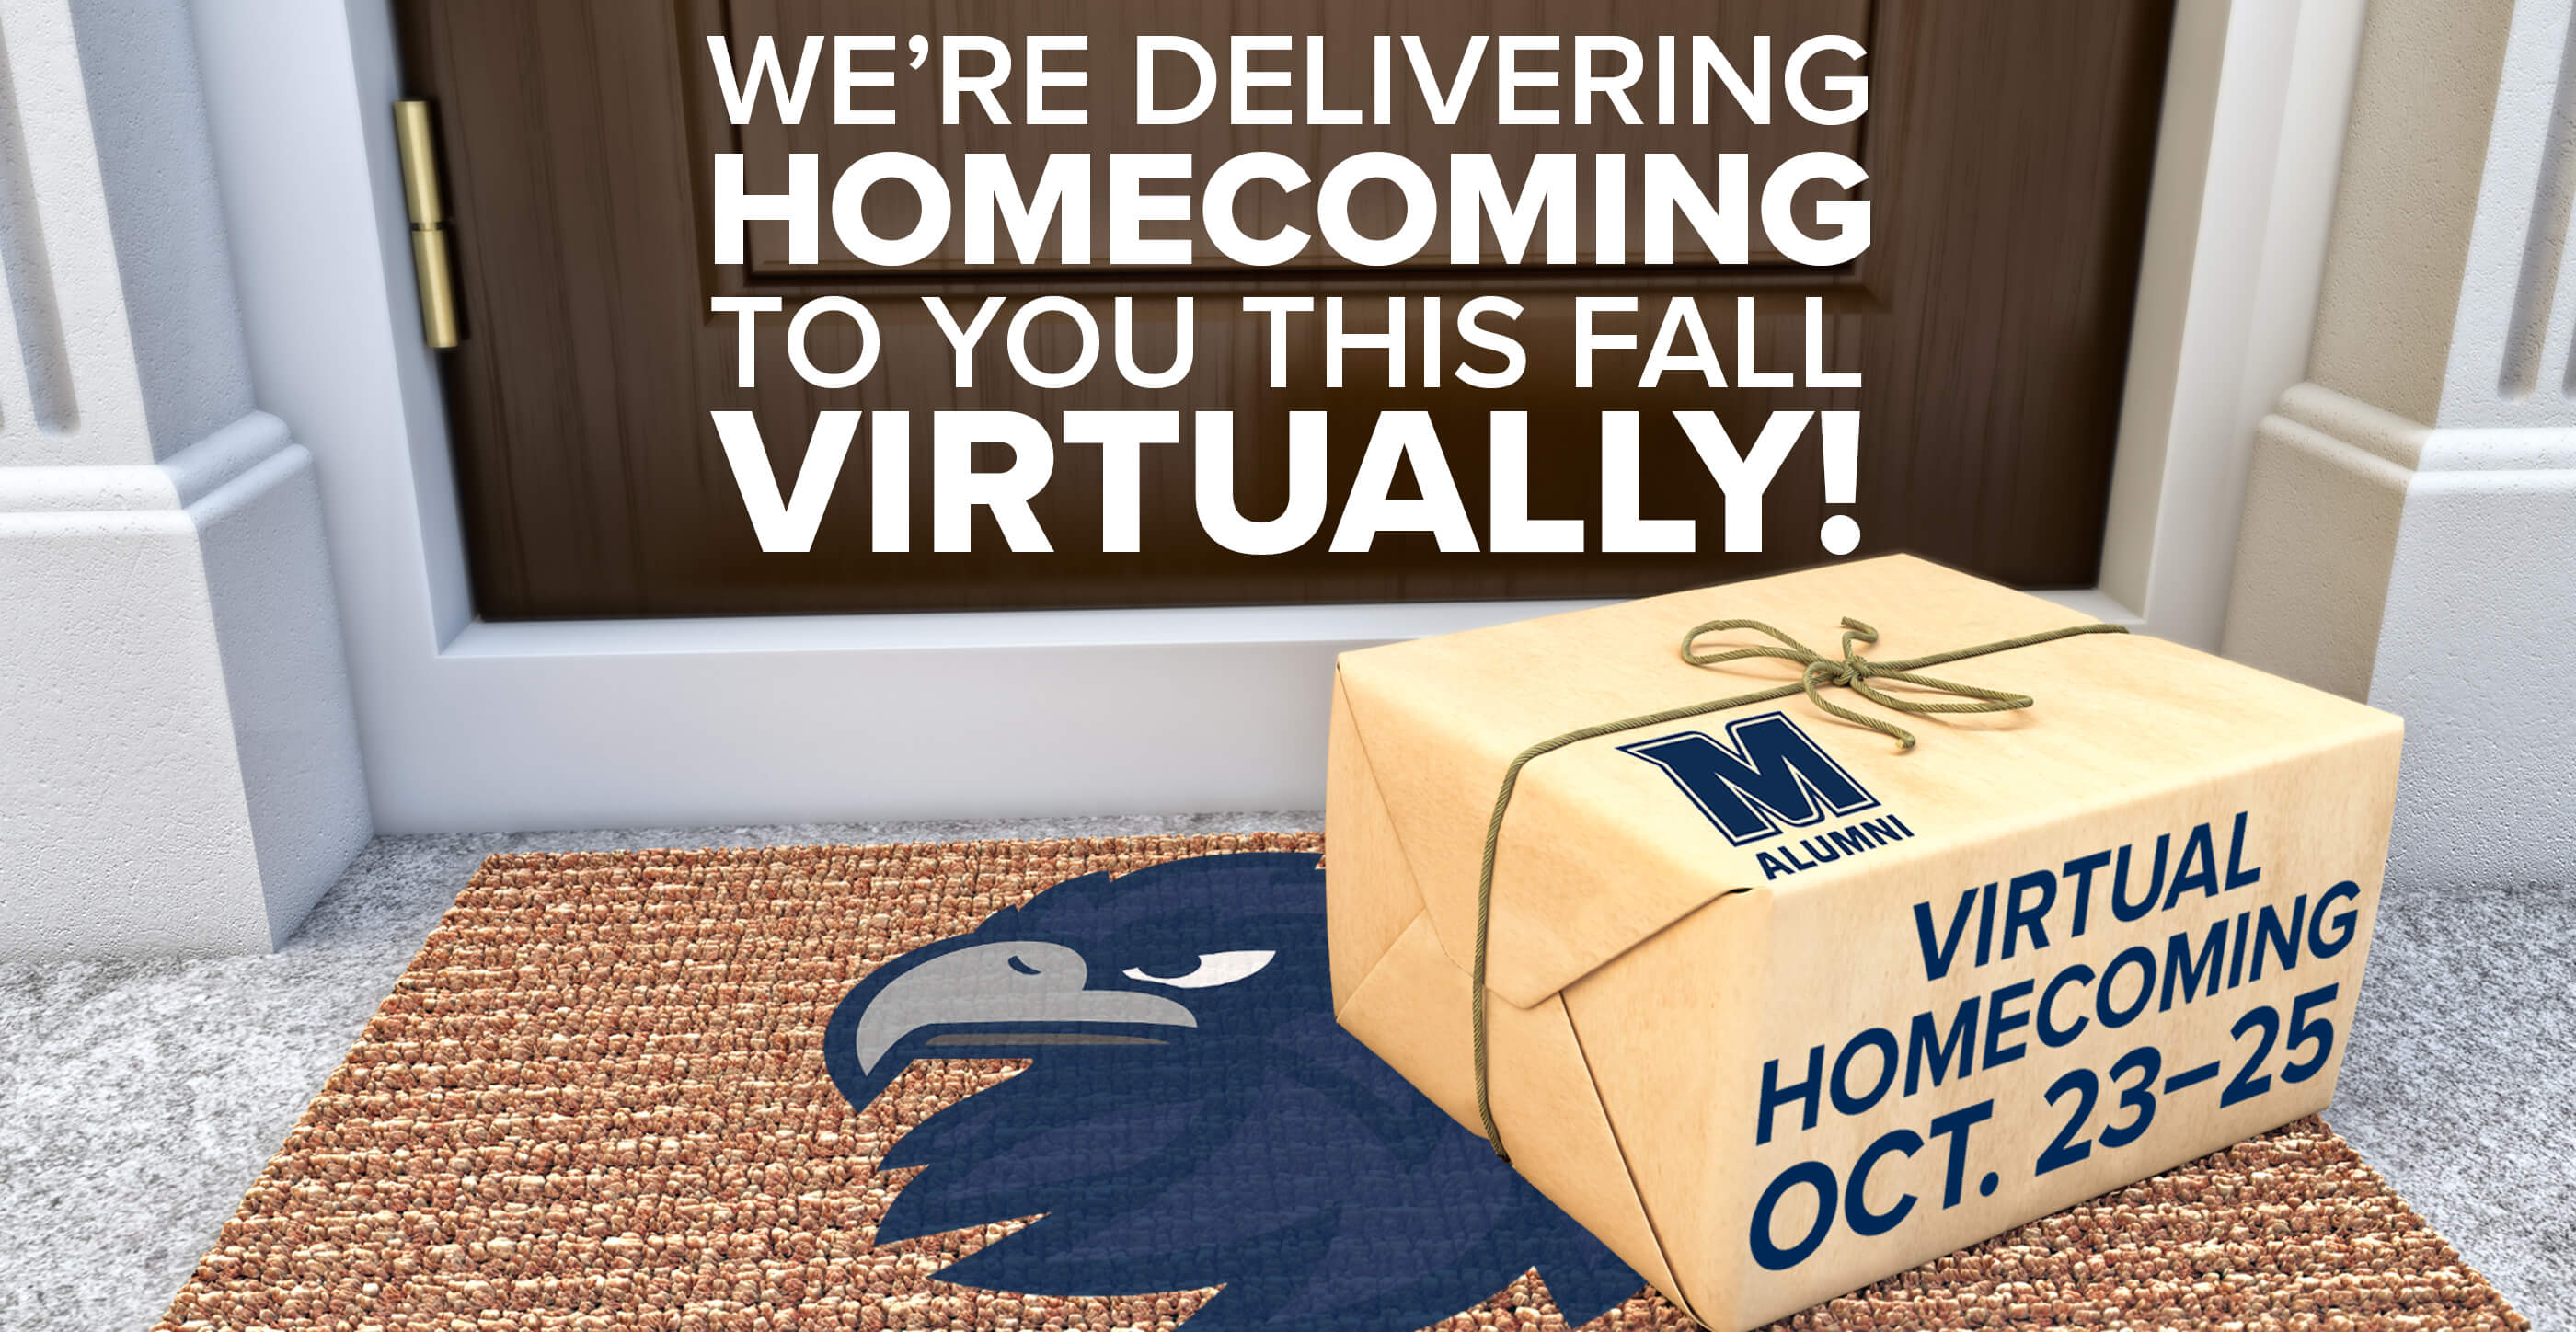 We're Delivering Homecoming to You This Fall, Virtually! Virtual Homecoming Oct. 23-25